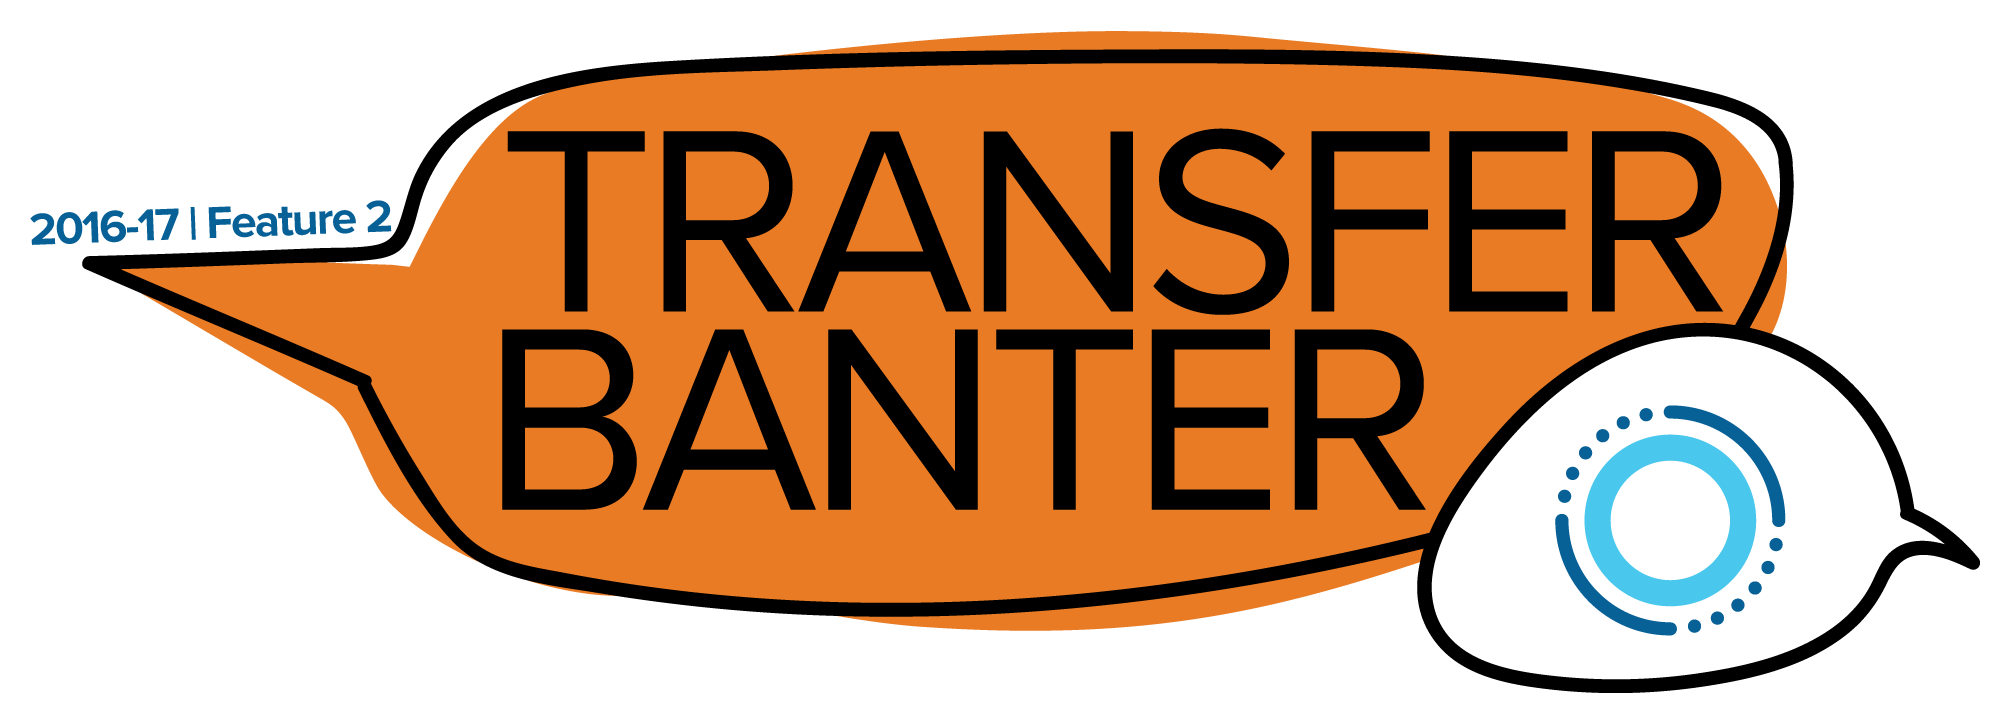 Transfer Banter banner feature 2